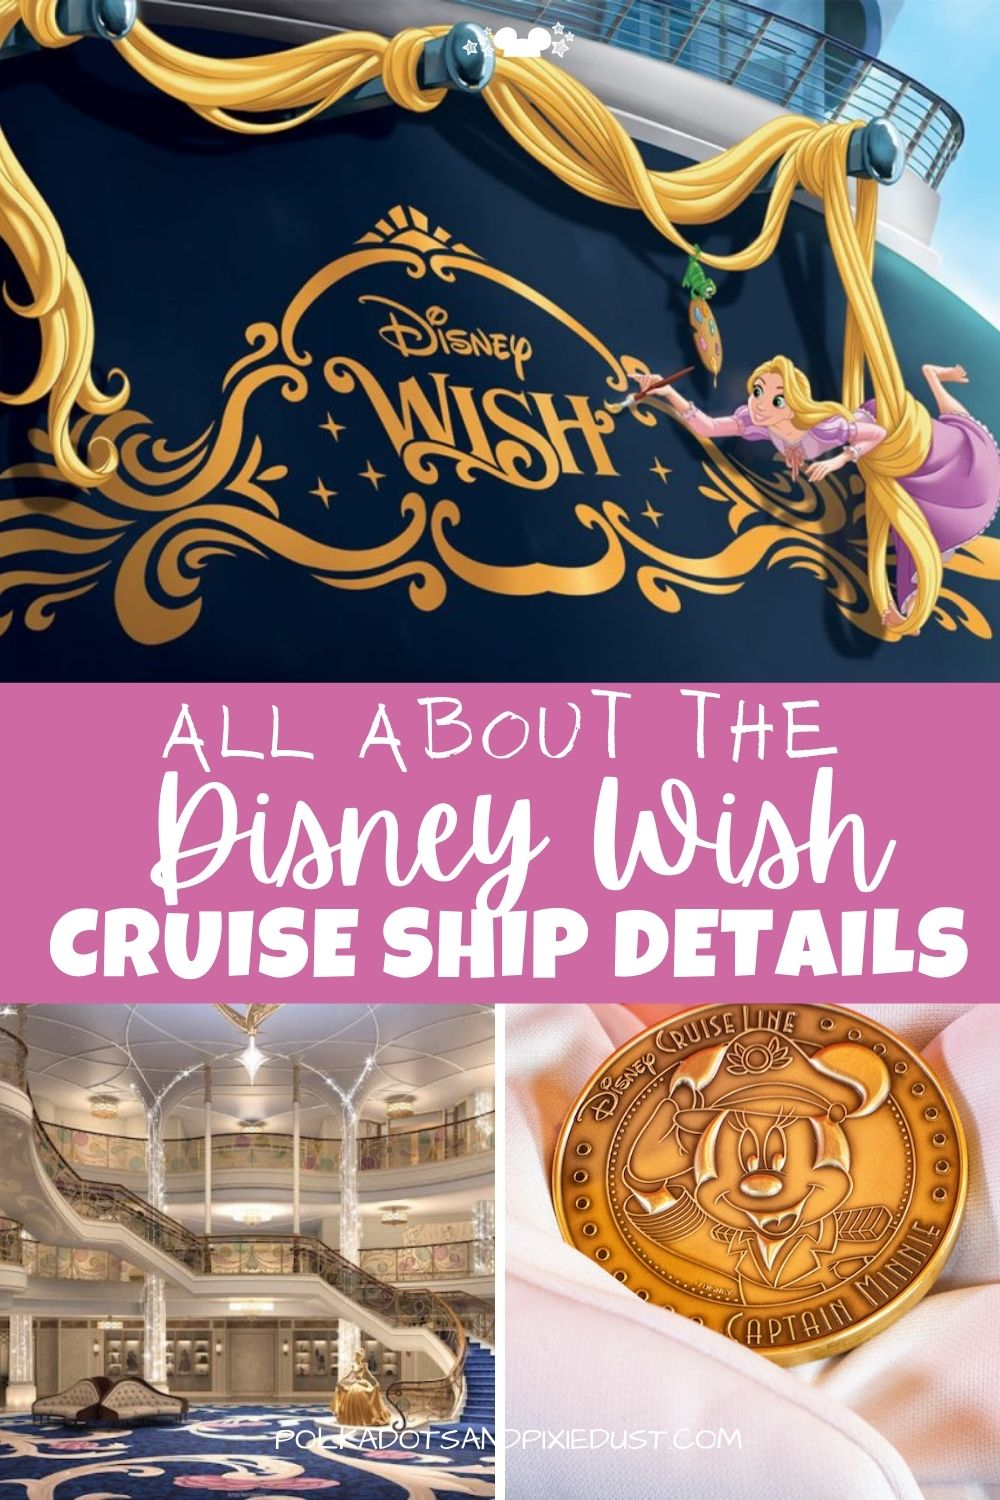 Disney Wish Cruise Ship has tons of new details! From everything about the boat to plans for sailing in 2022. Here is everything you need to know about the Disney Wish Cruise Boat! #disneywishcruise #disneycruise #polkadotpixies